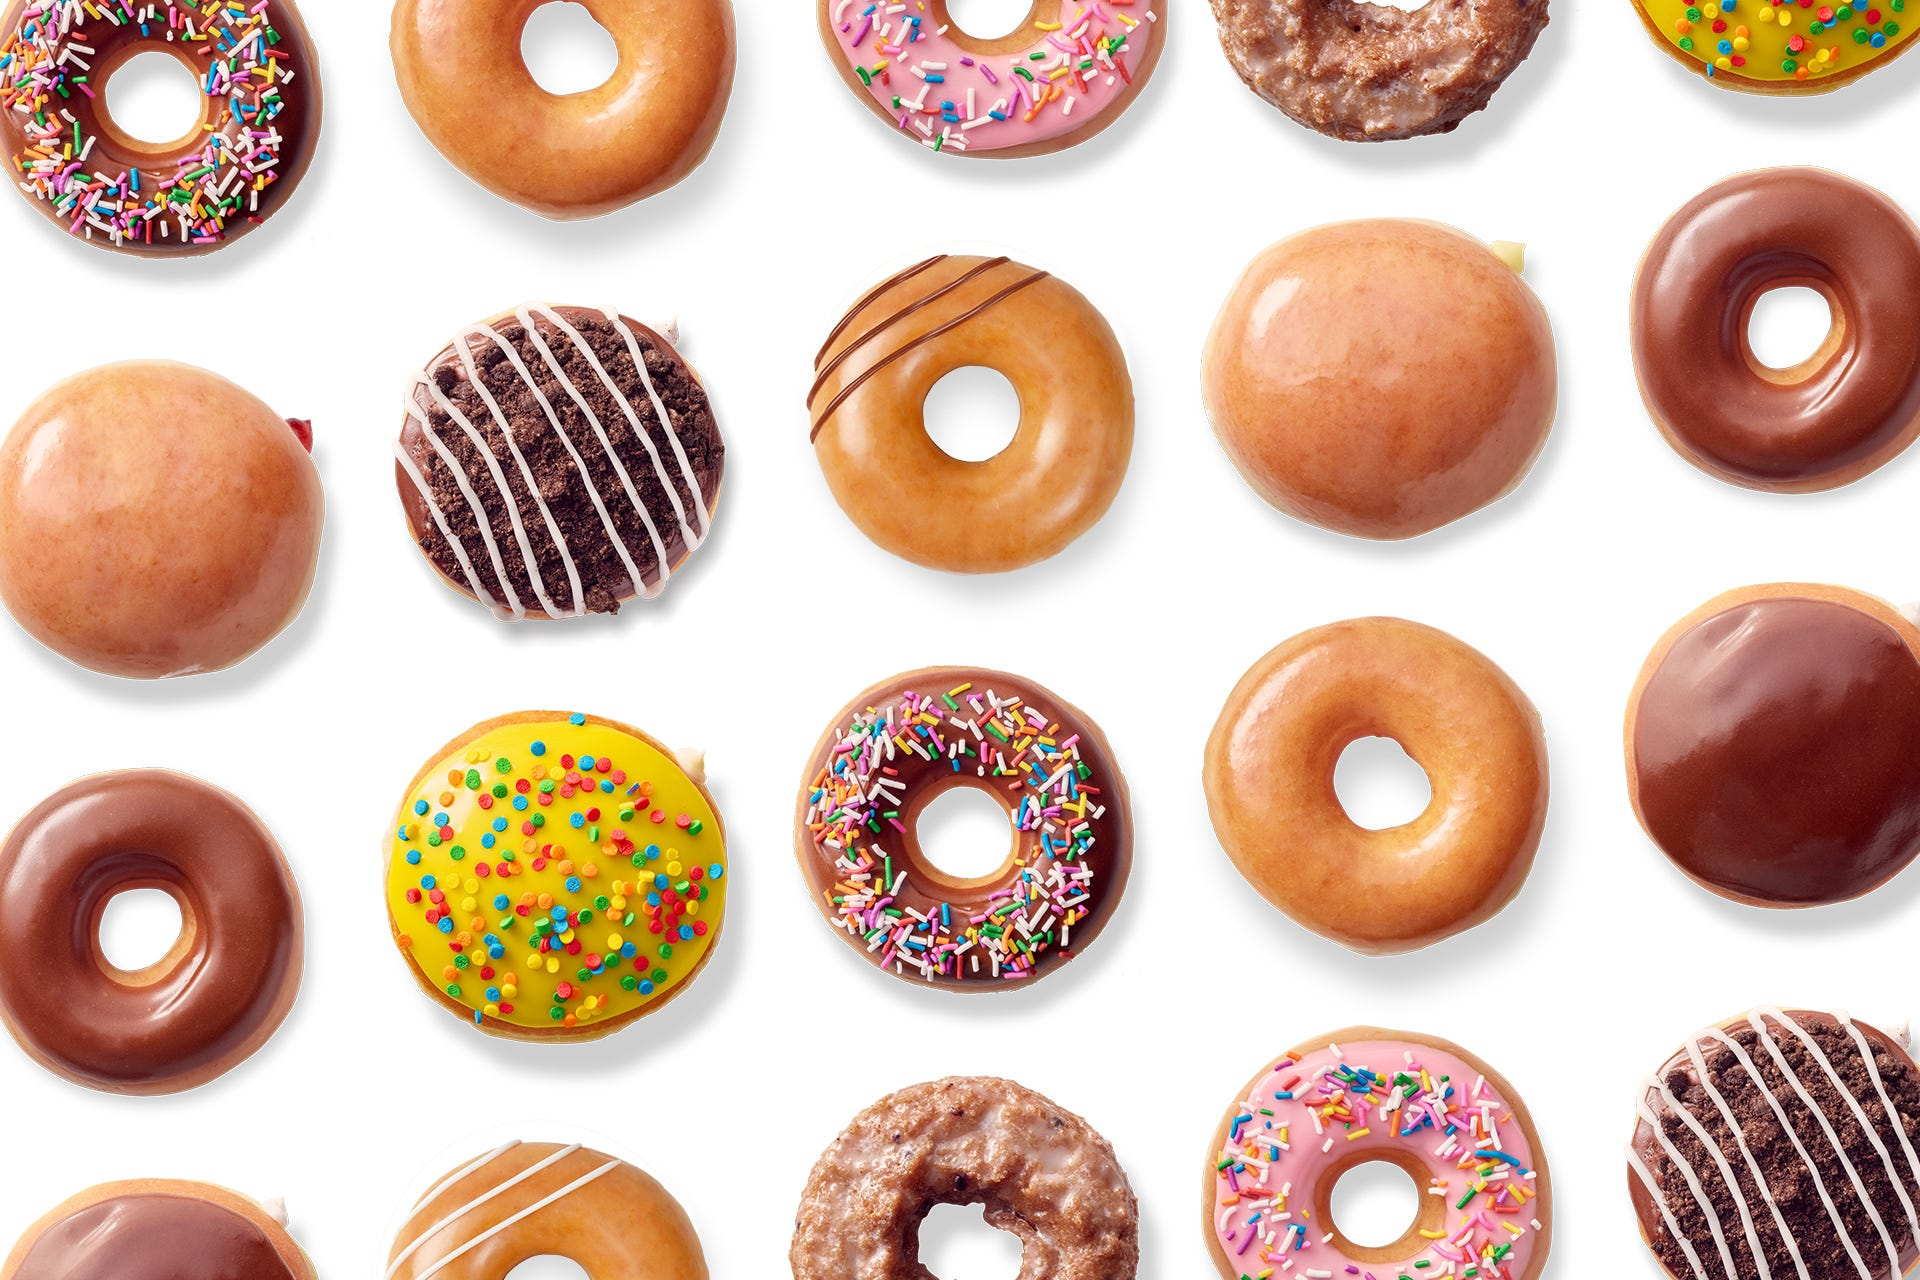 Krispy Kreme, Dunkin' to give away free donuts Friday for Donut Day, plus get extra with COVID vaccine card